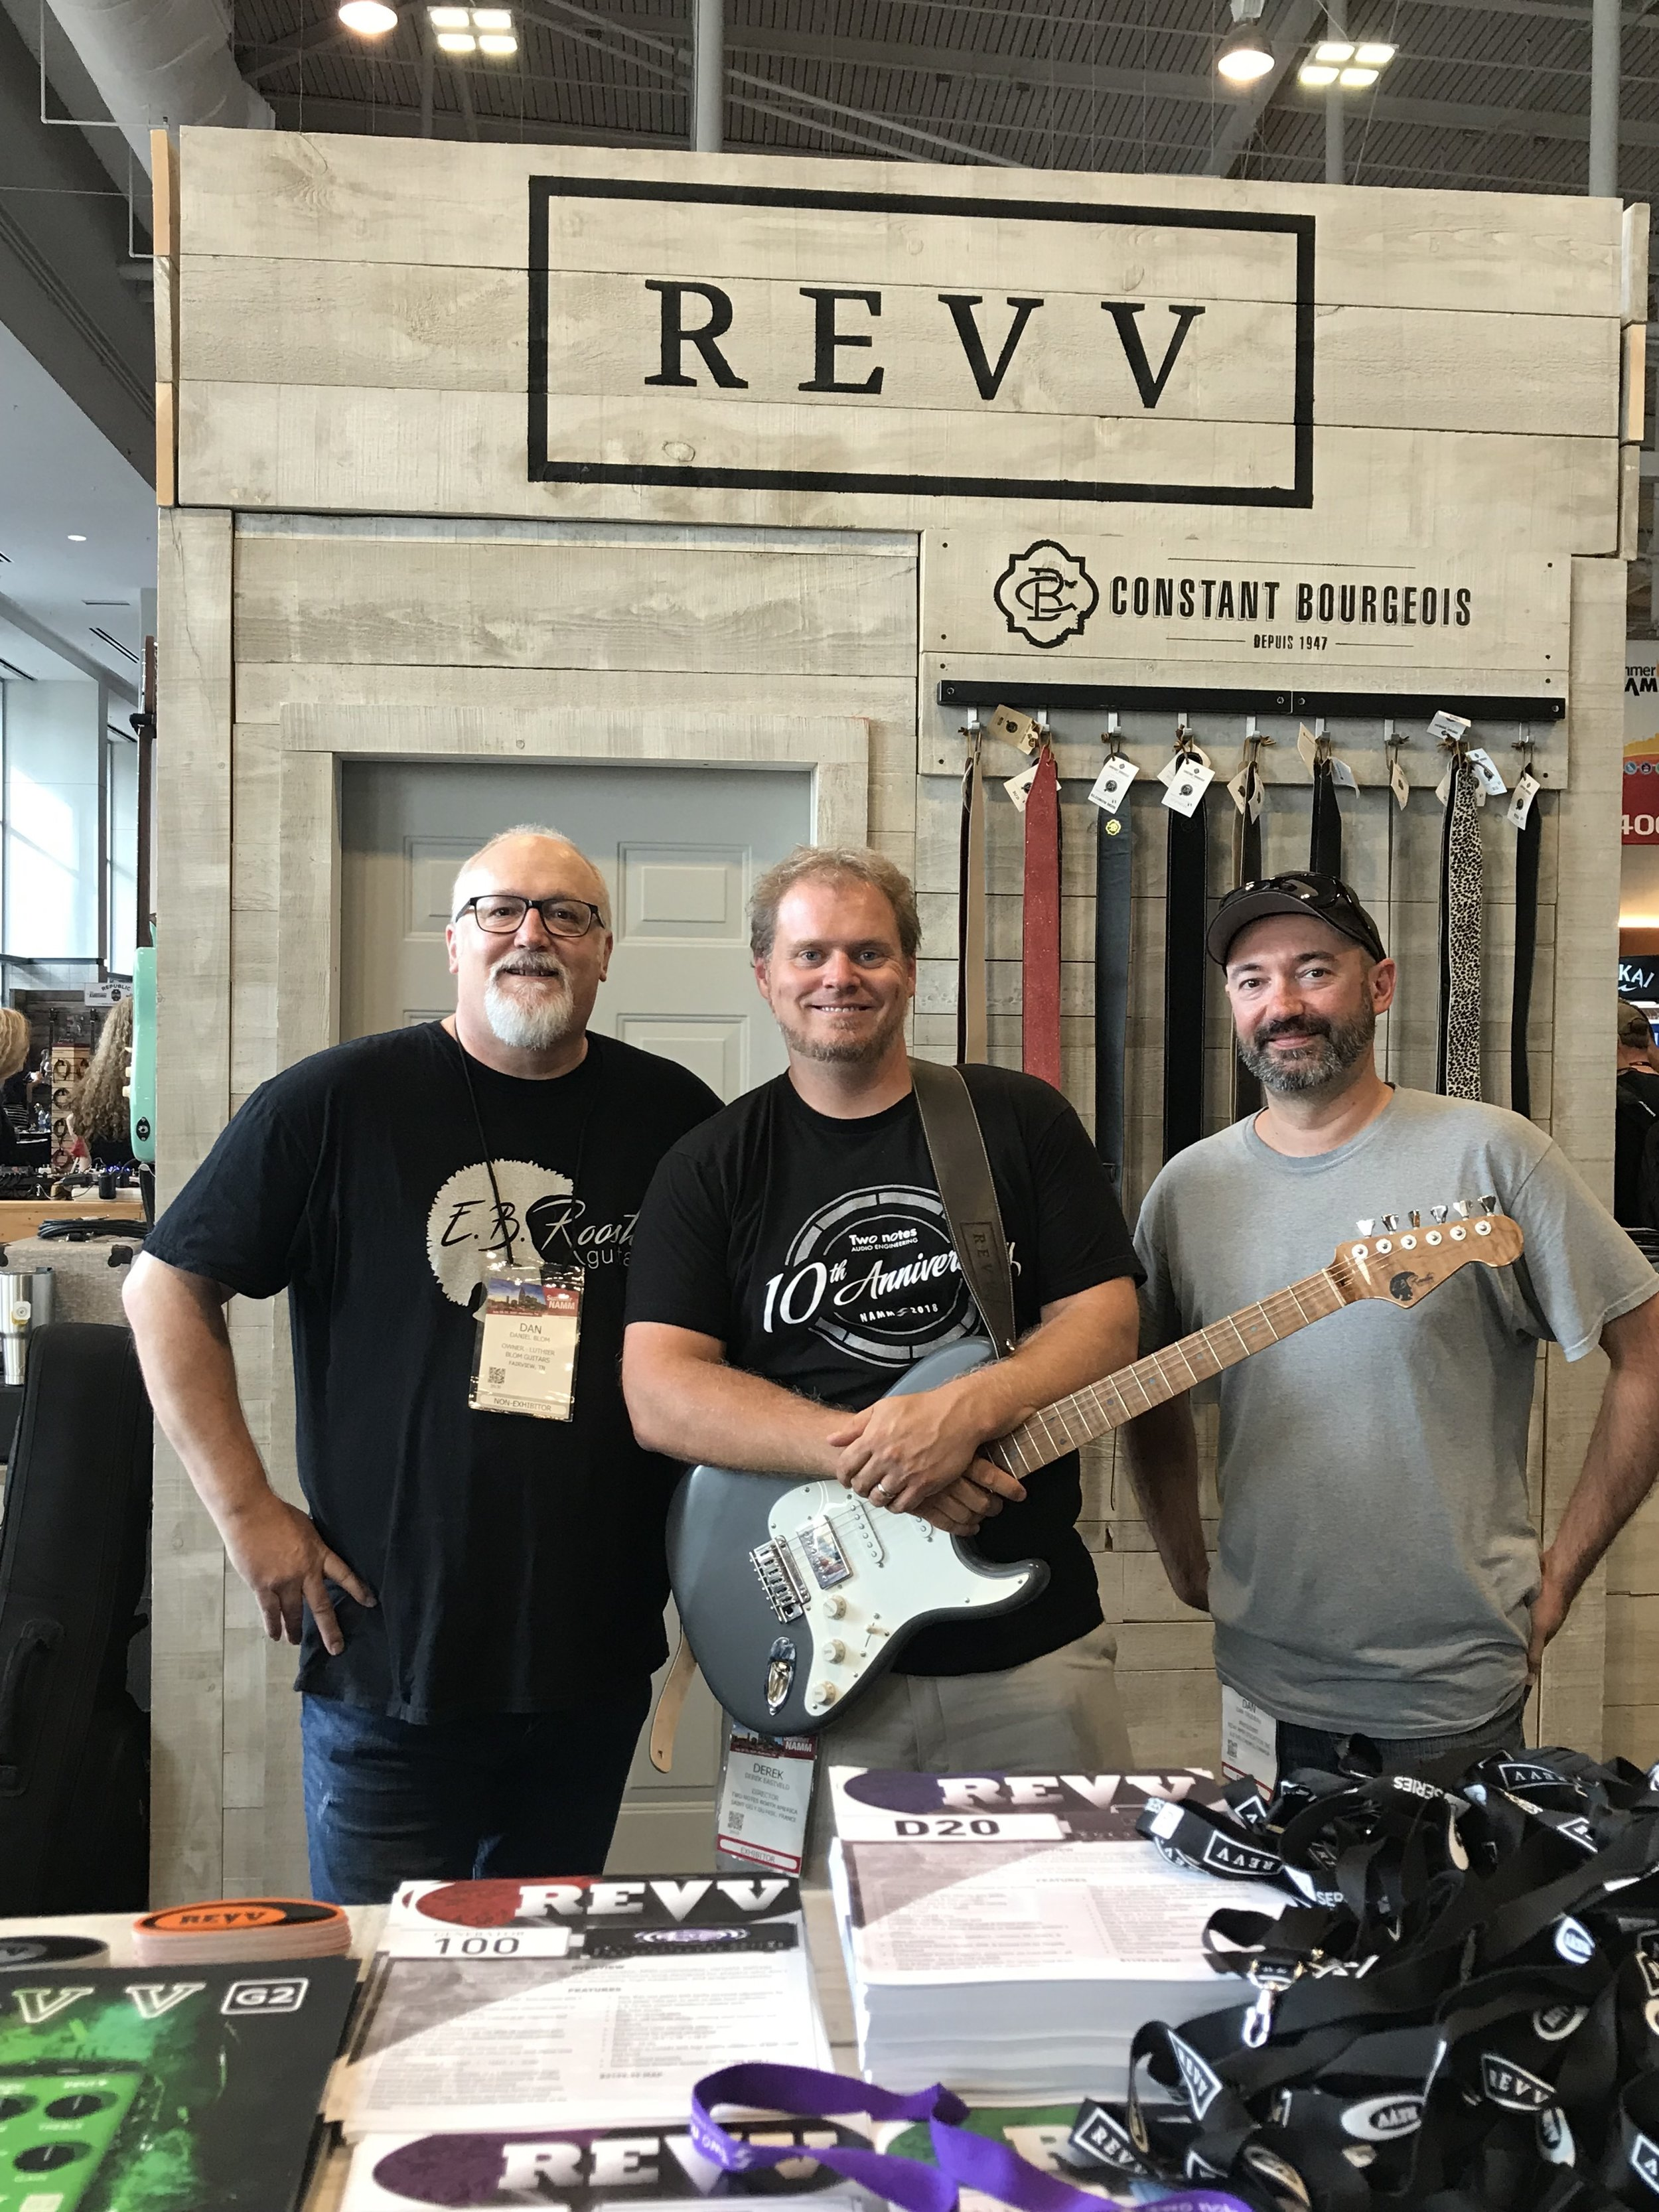 Summer NAMM 2019 - We are a REVV dealer!! - Derek Eastveld and Dan Trudeau are really great guys. Proud to say Derek Eastveld owns a few of our best guitars.